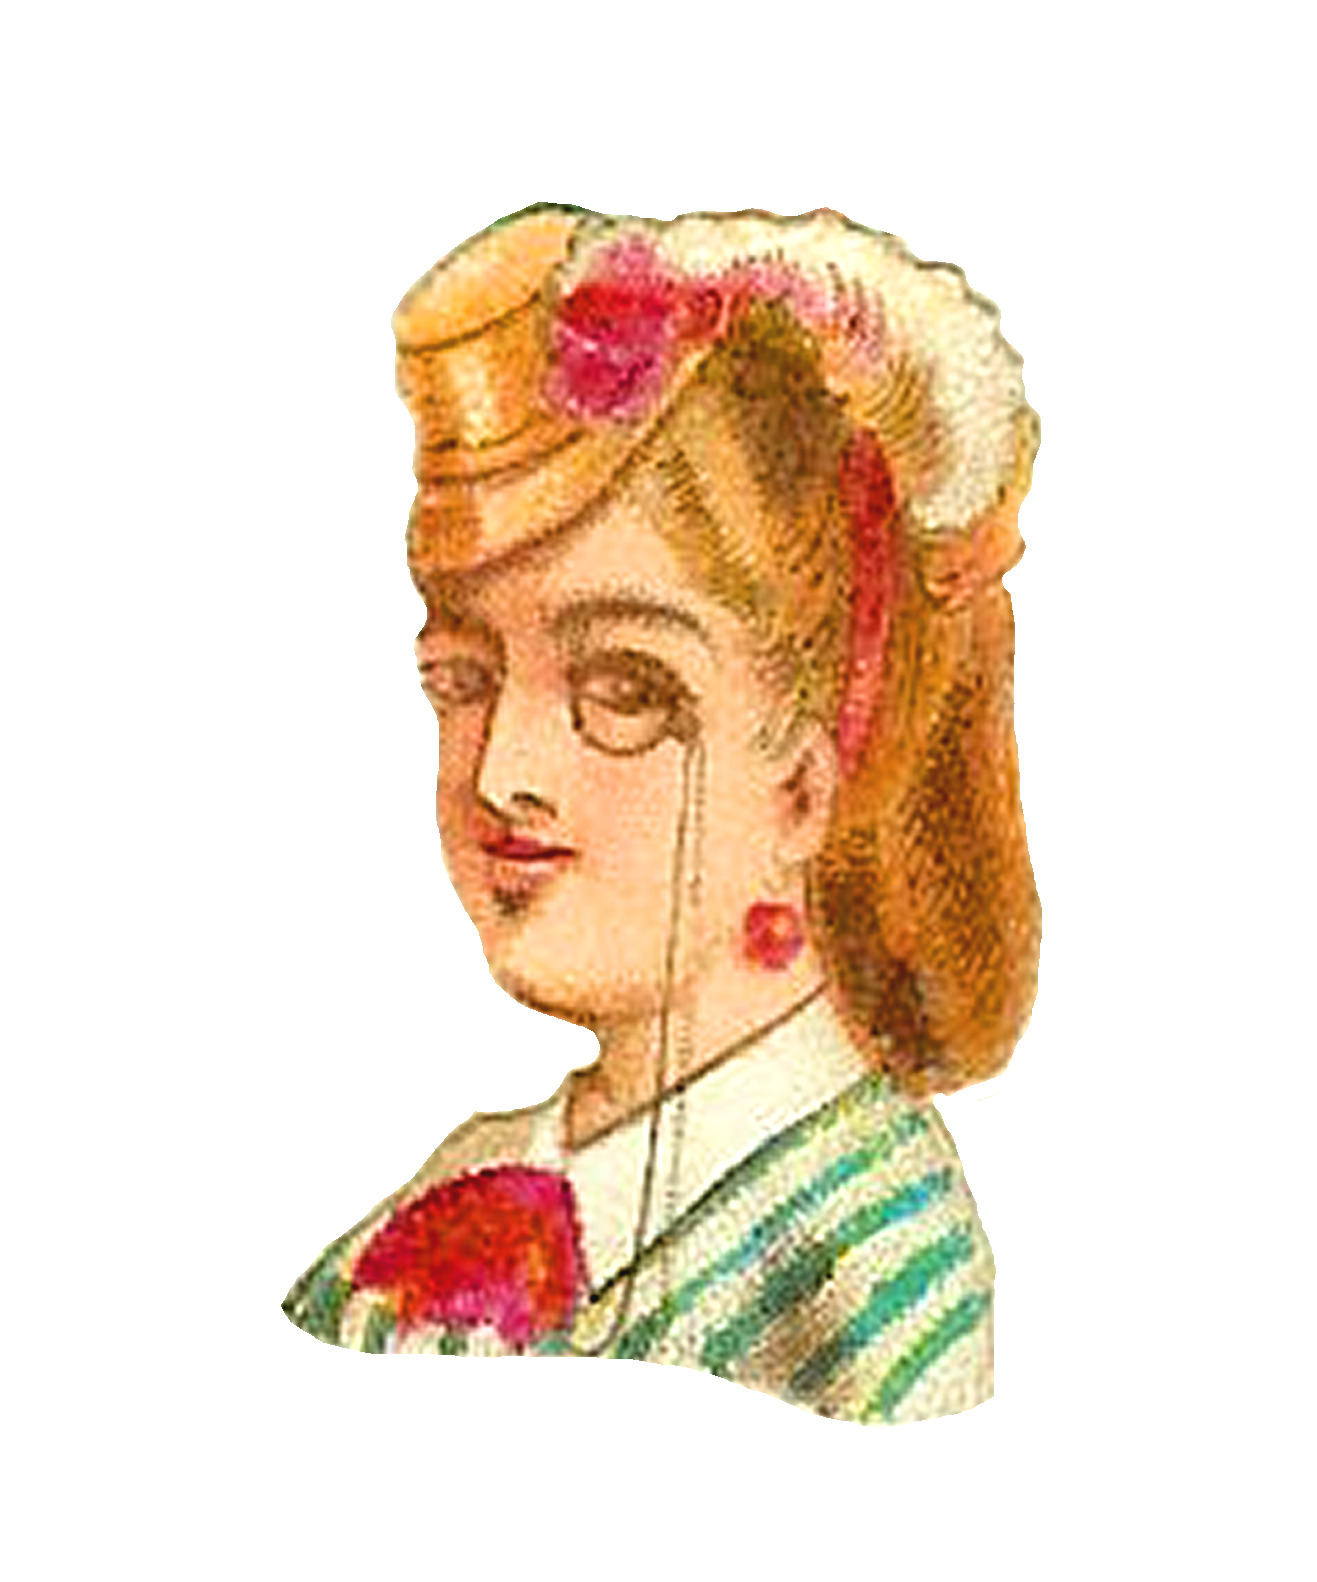 vintage hat clipart - photo #35